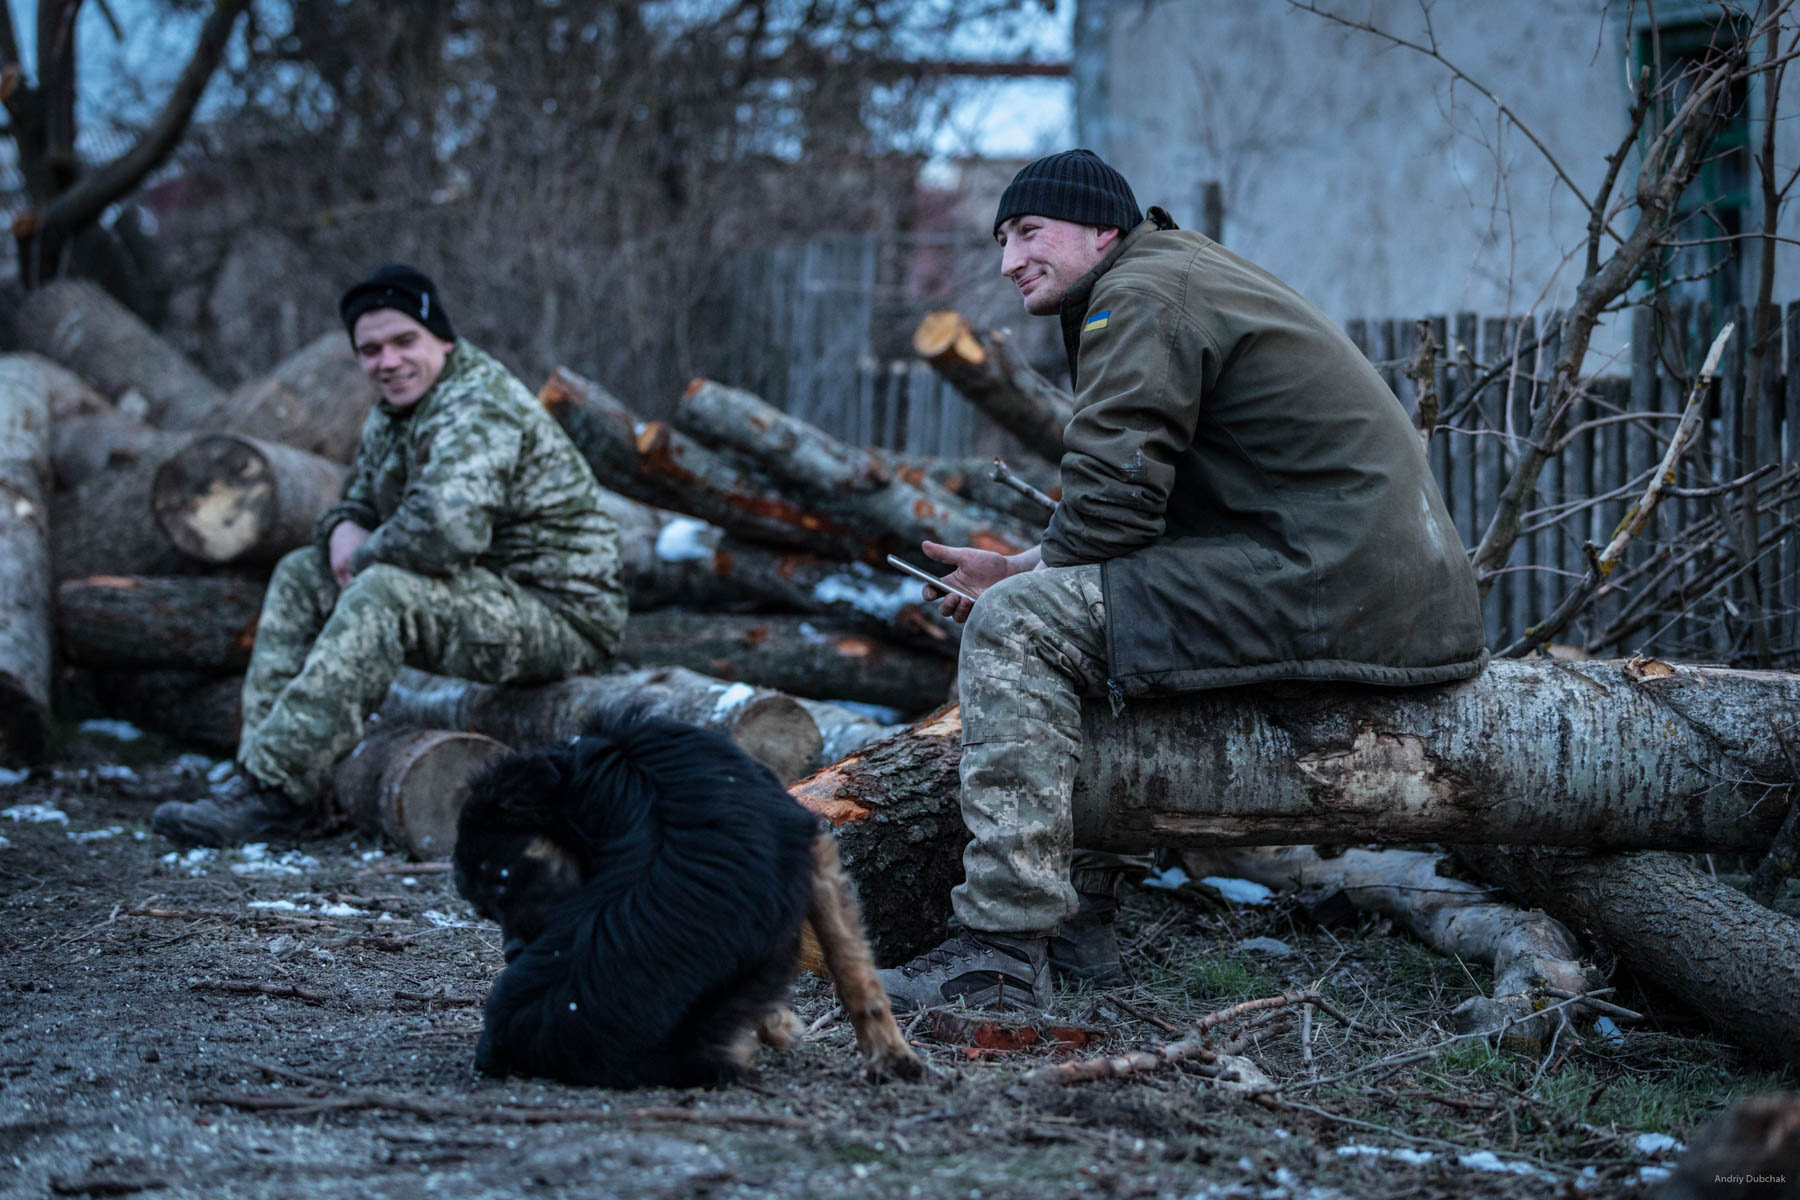 Driver, Vasily, and sailor, Dmitry, rest after harvesting firewood. Shirokine, March 2018.